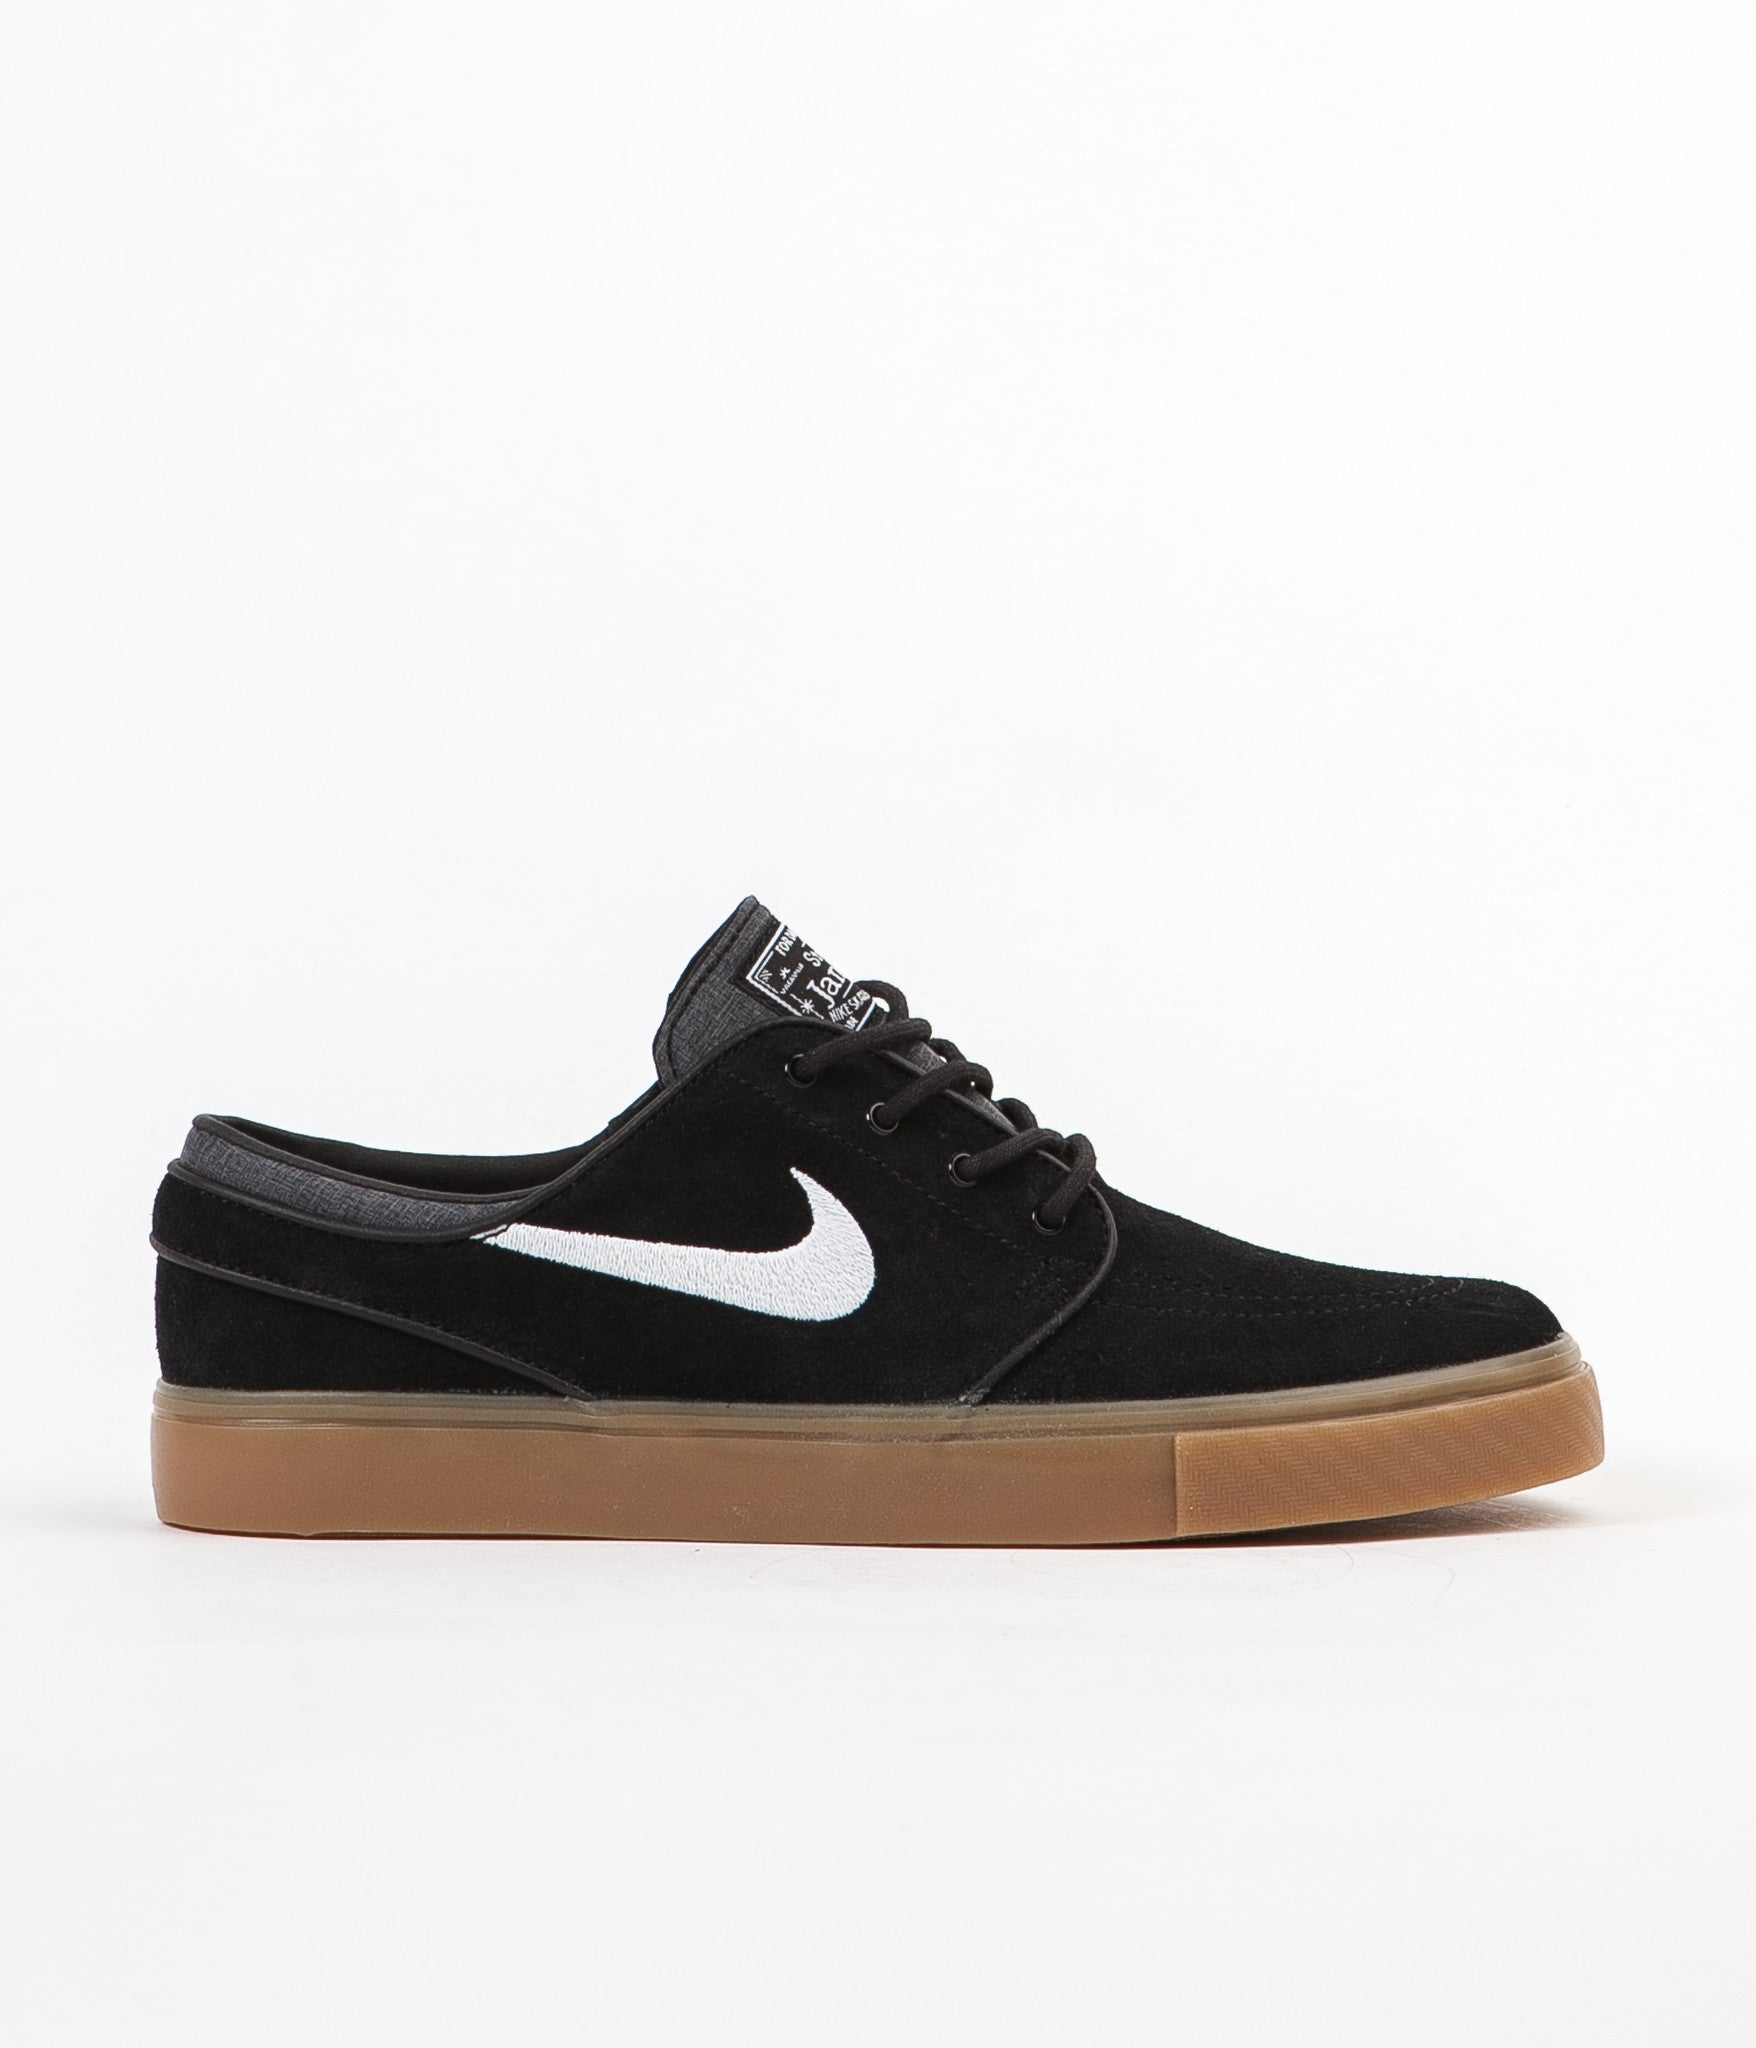 cheap for discount ccdfd 6412f ... canada nike sb stefan janoski shoes black white gum light brown d6acd  81fa4